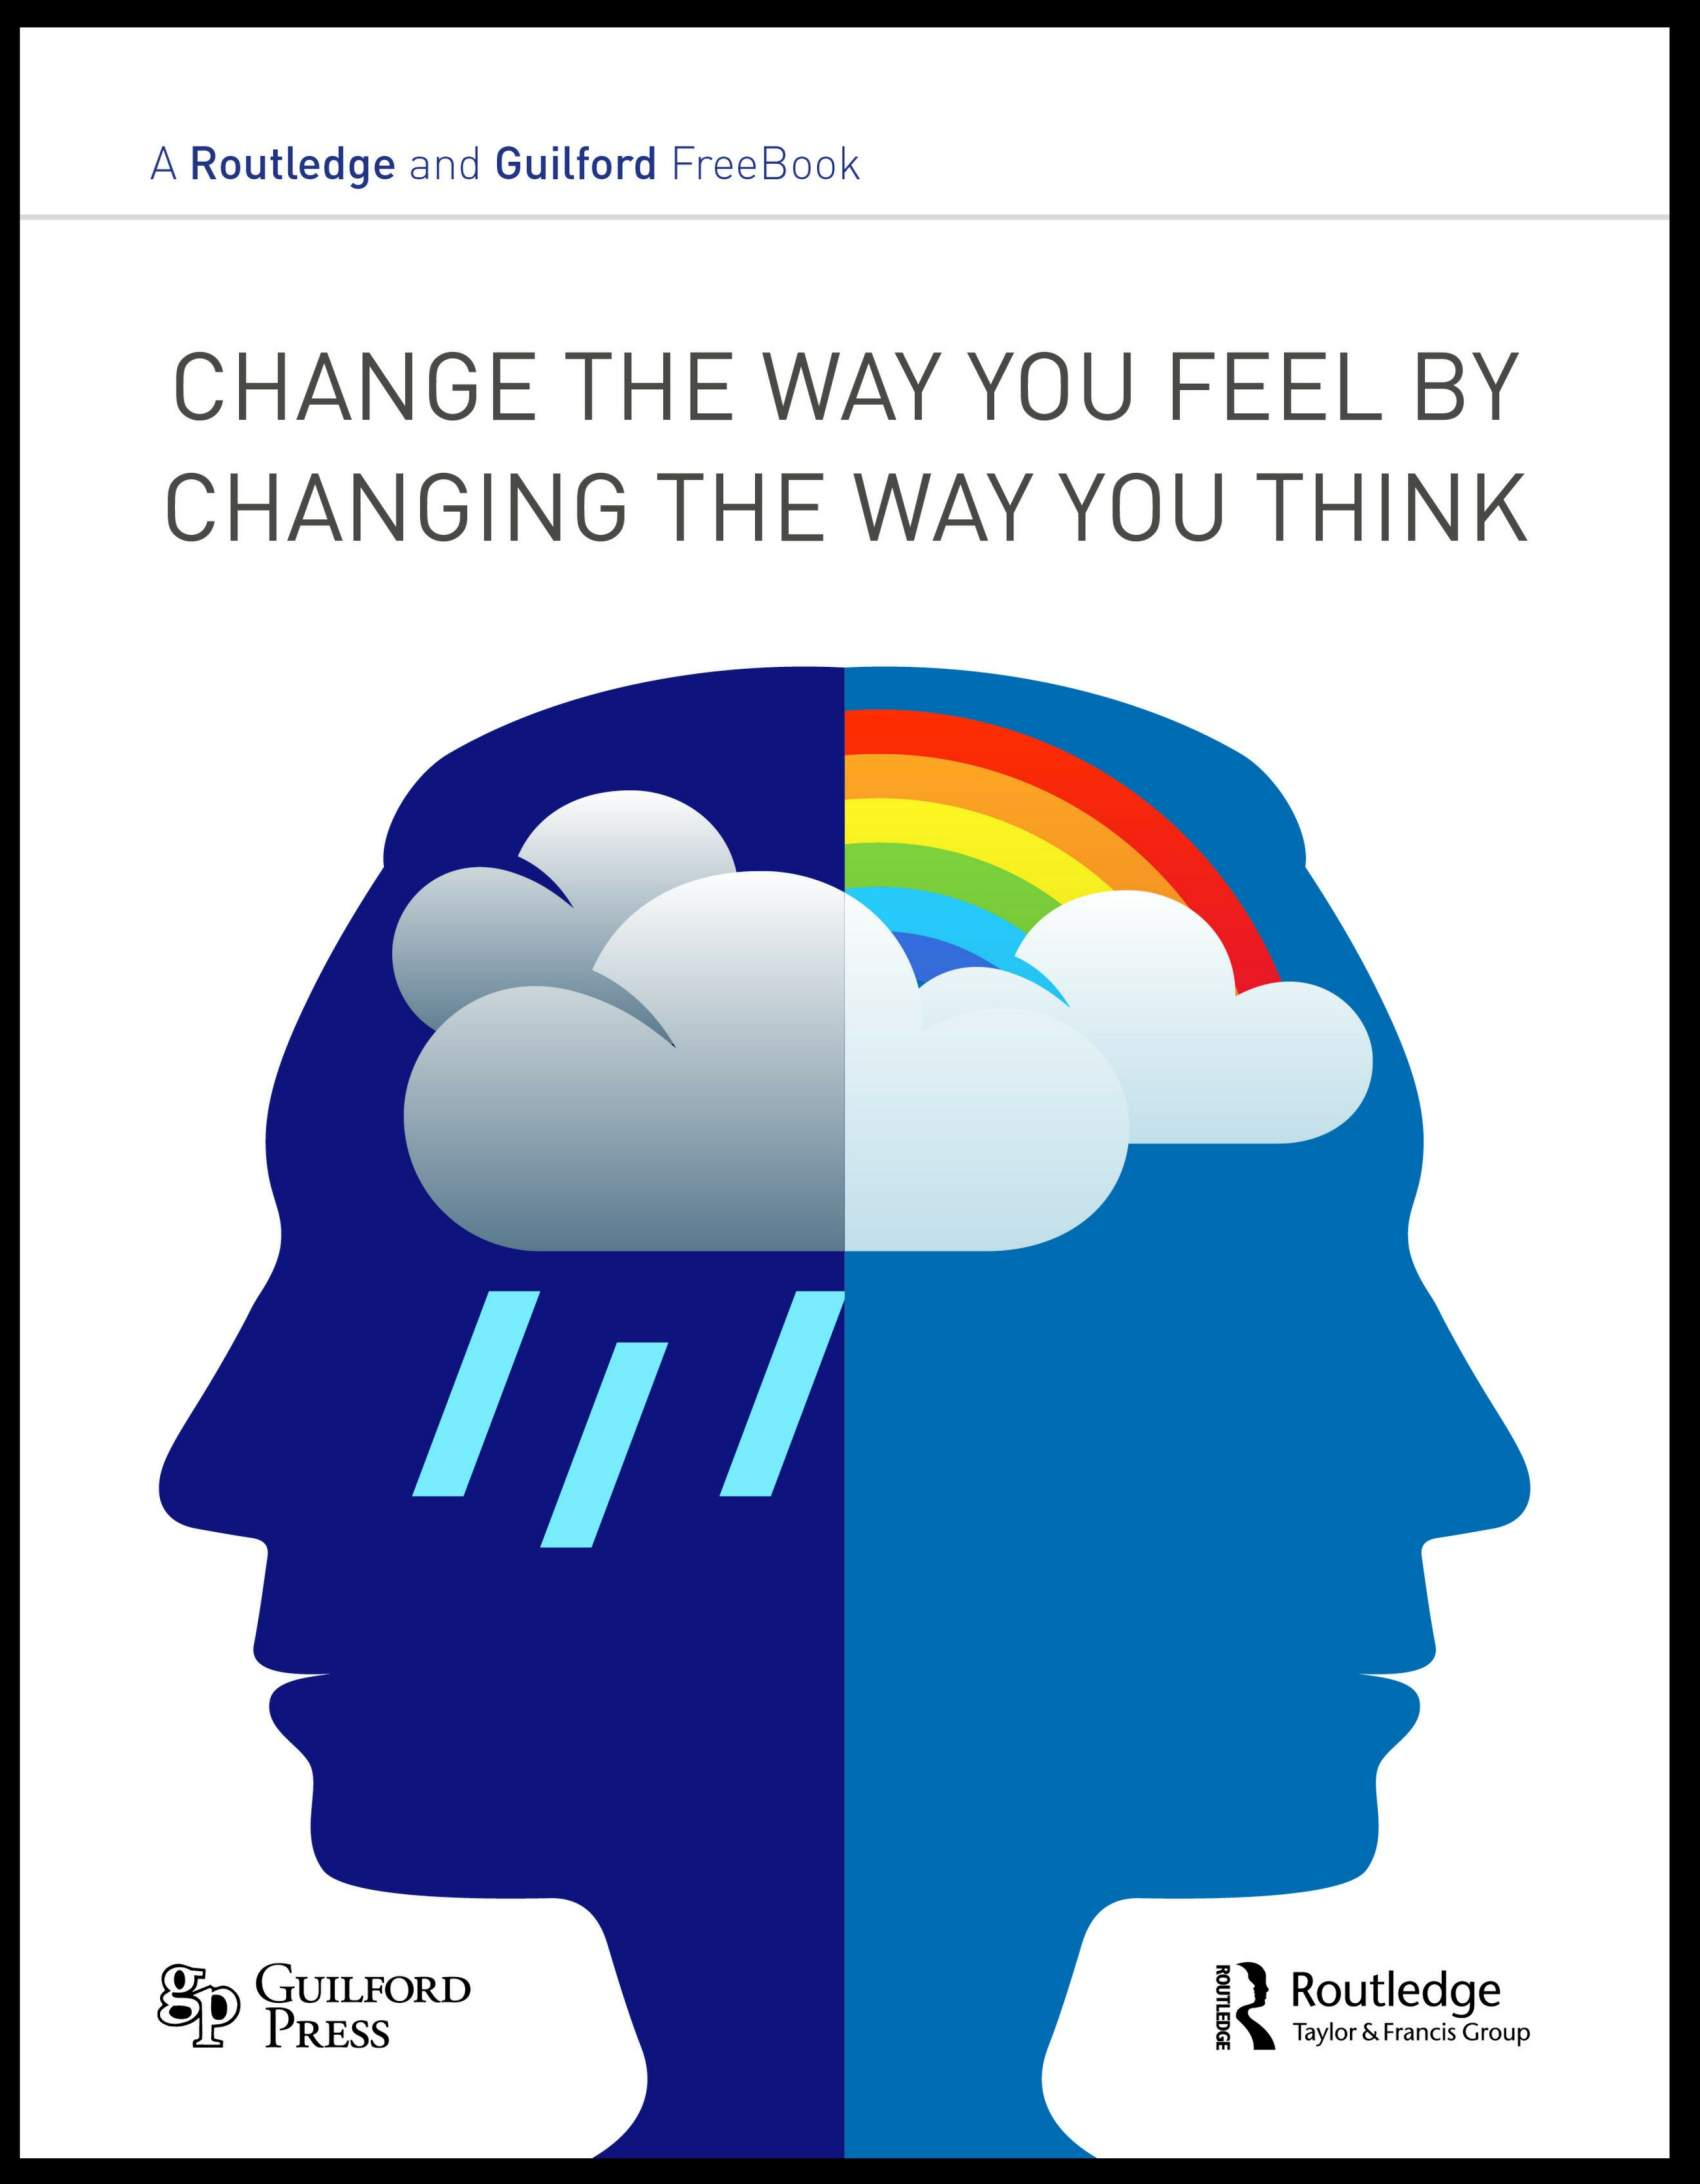 Change the Way You Feel by Changing the Way you Think